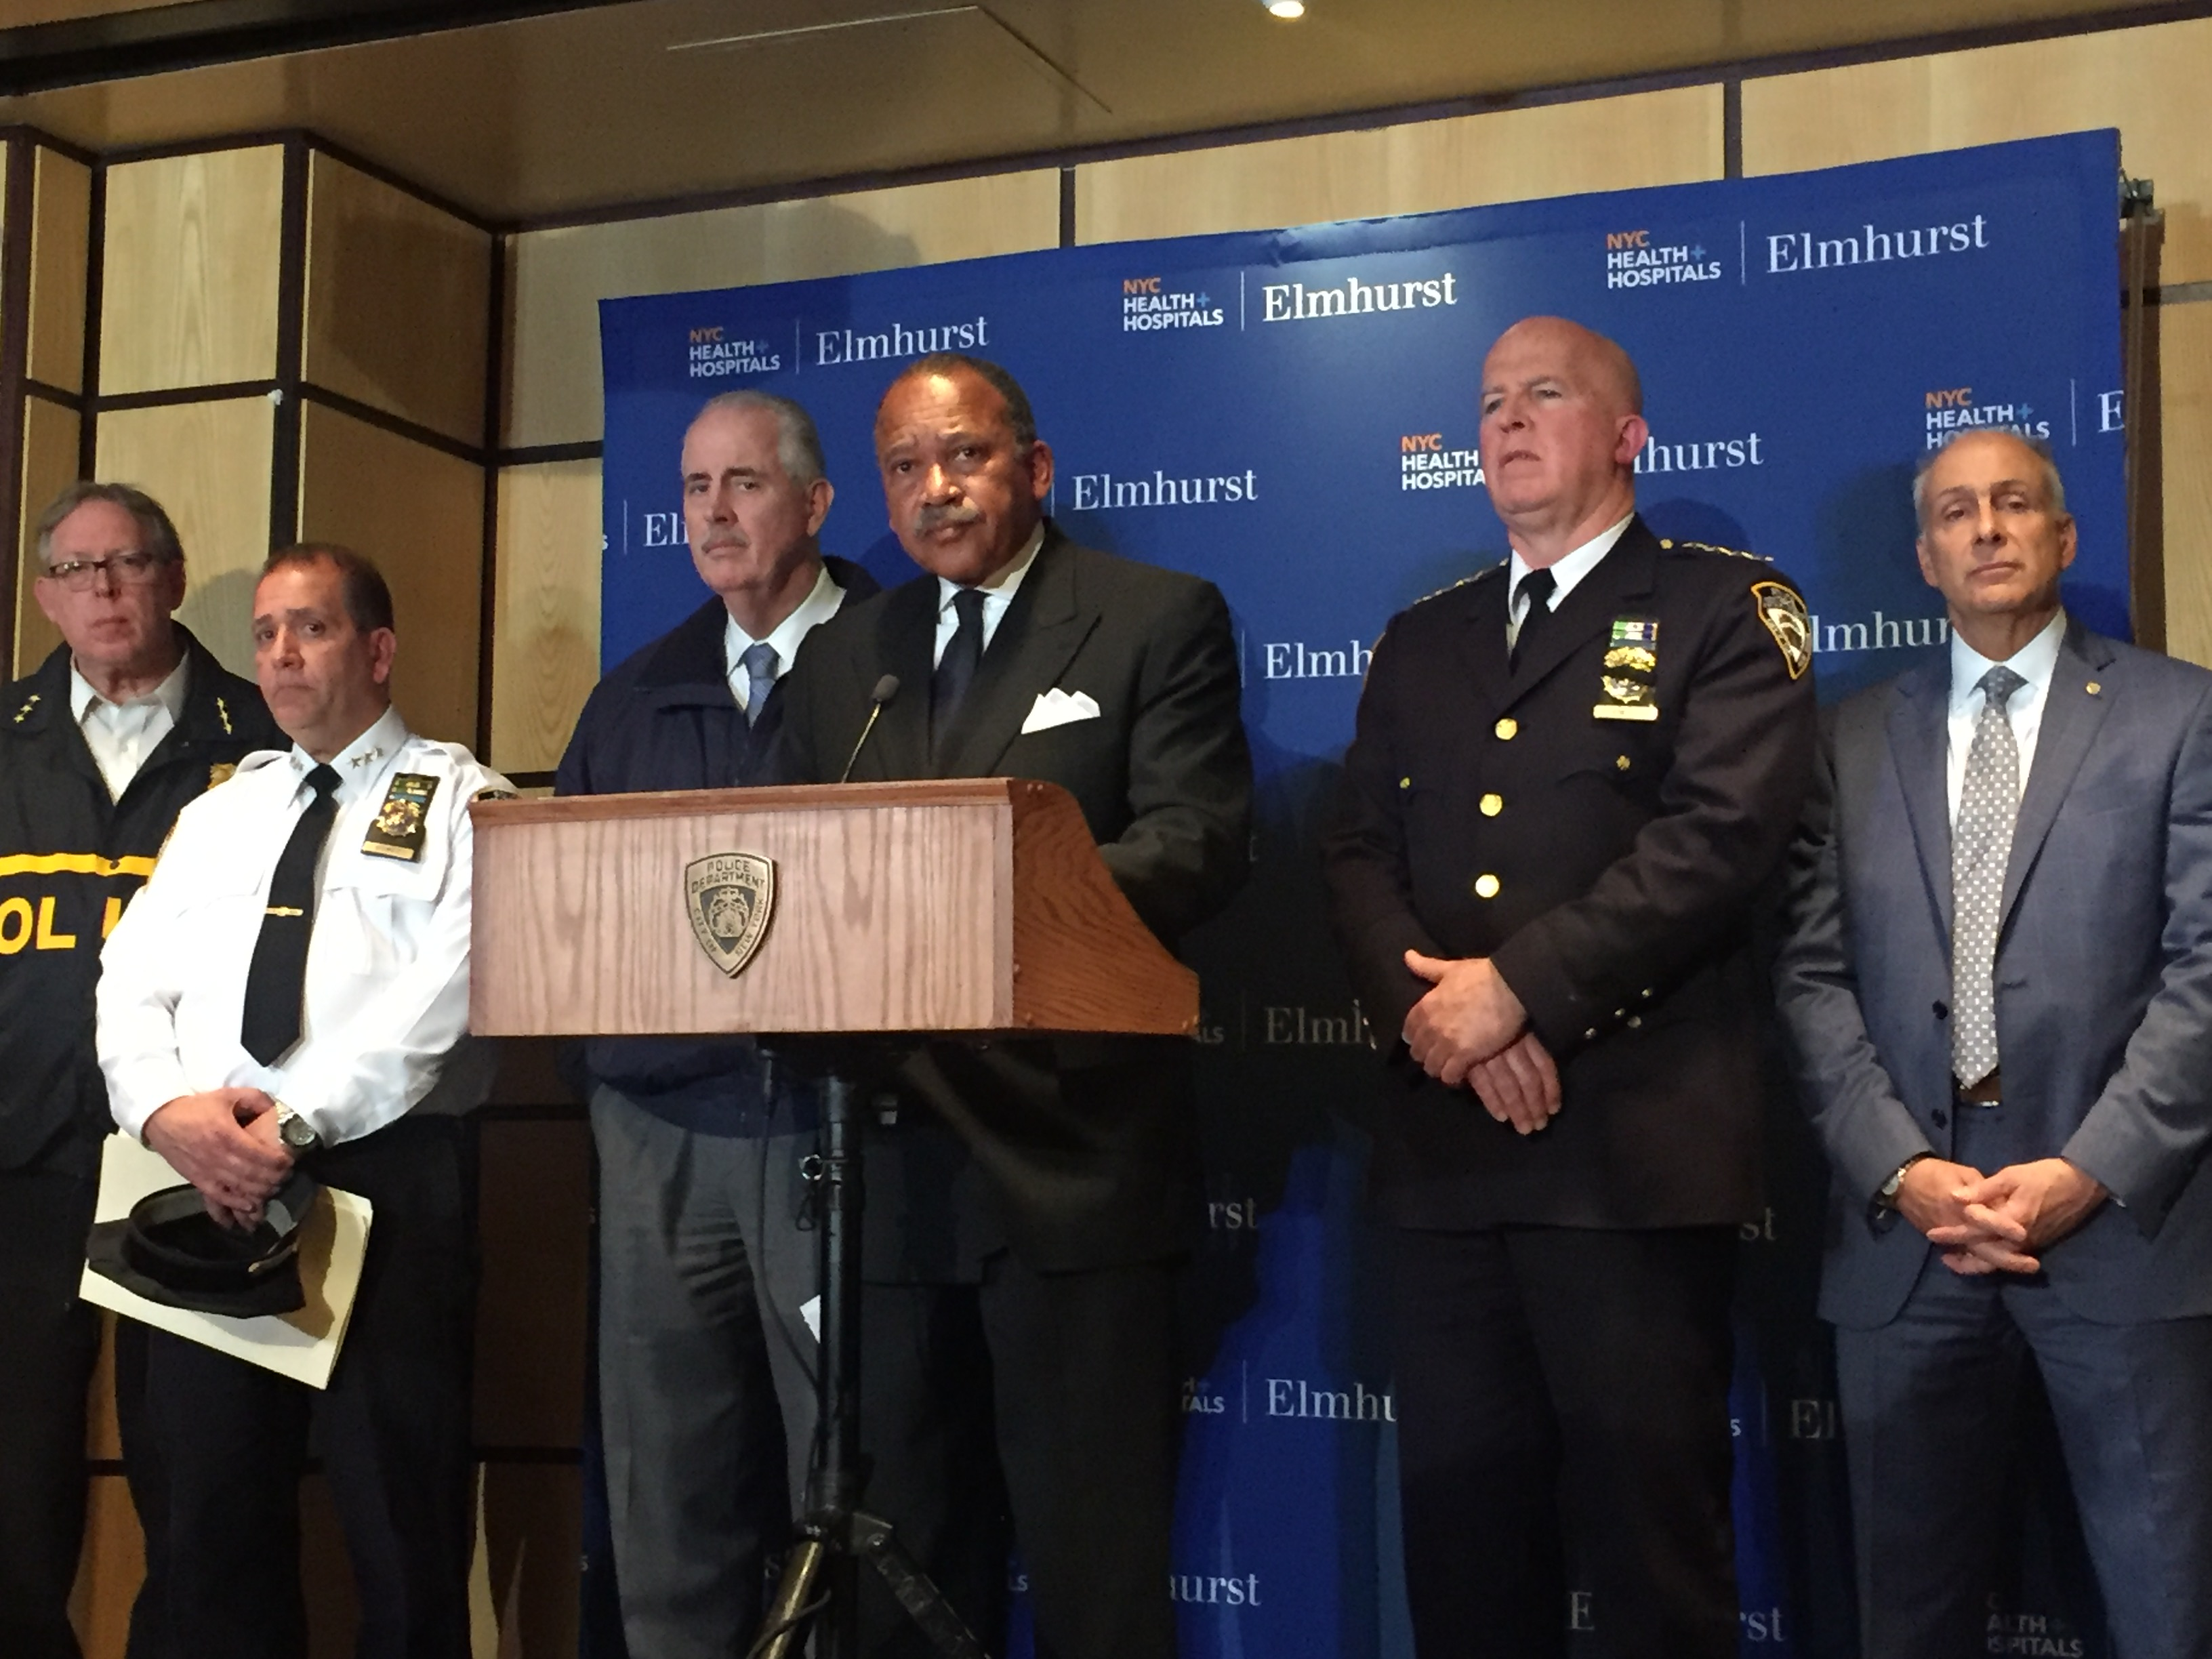 Brooklyn, NY - NYC Police Officer Shot By Friendly Fire During Drug